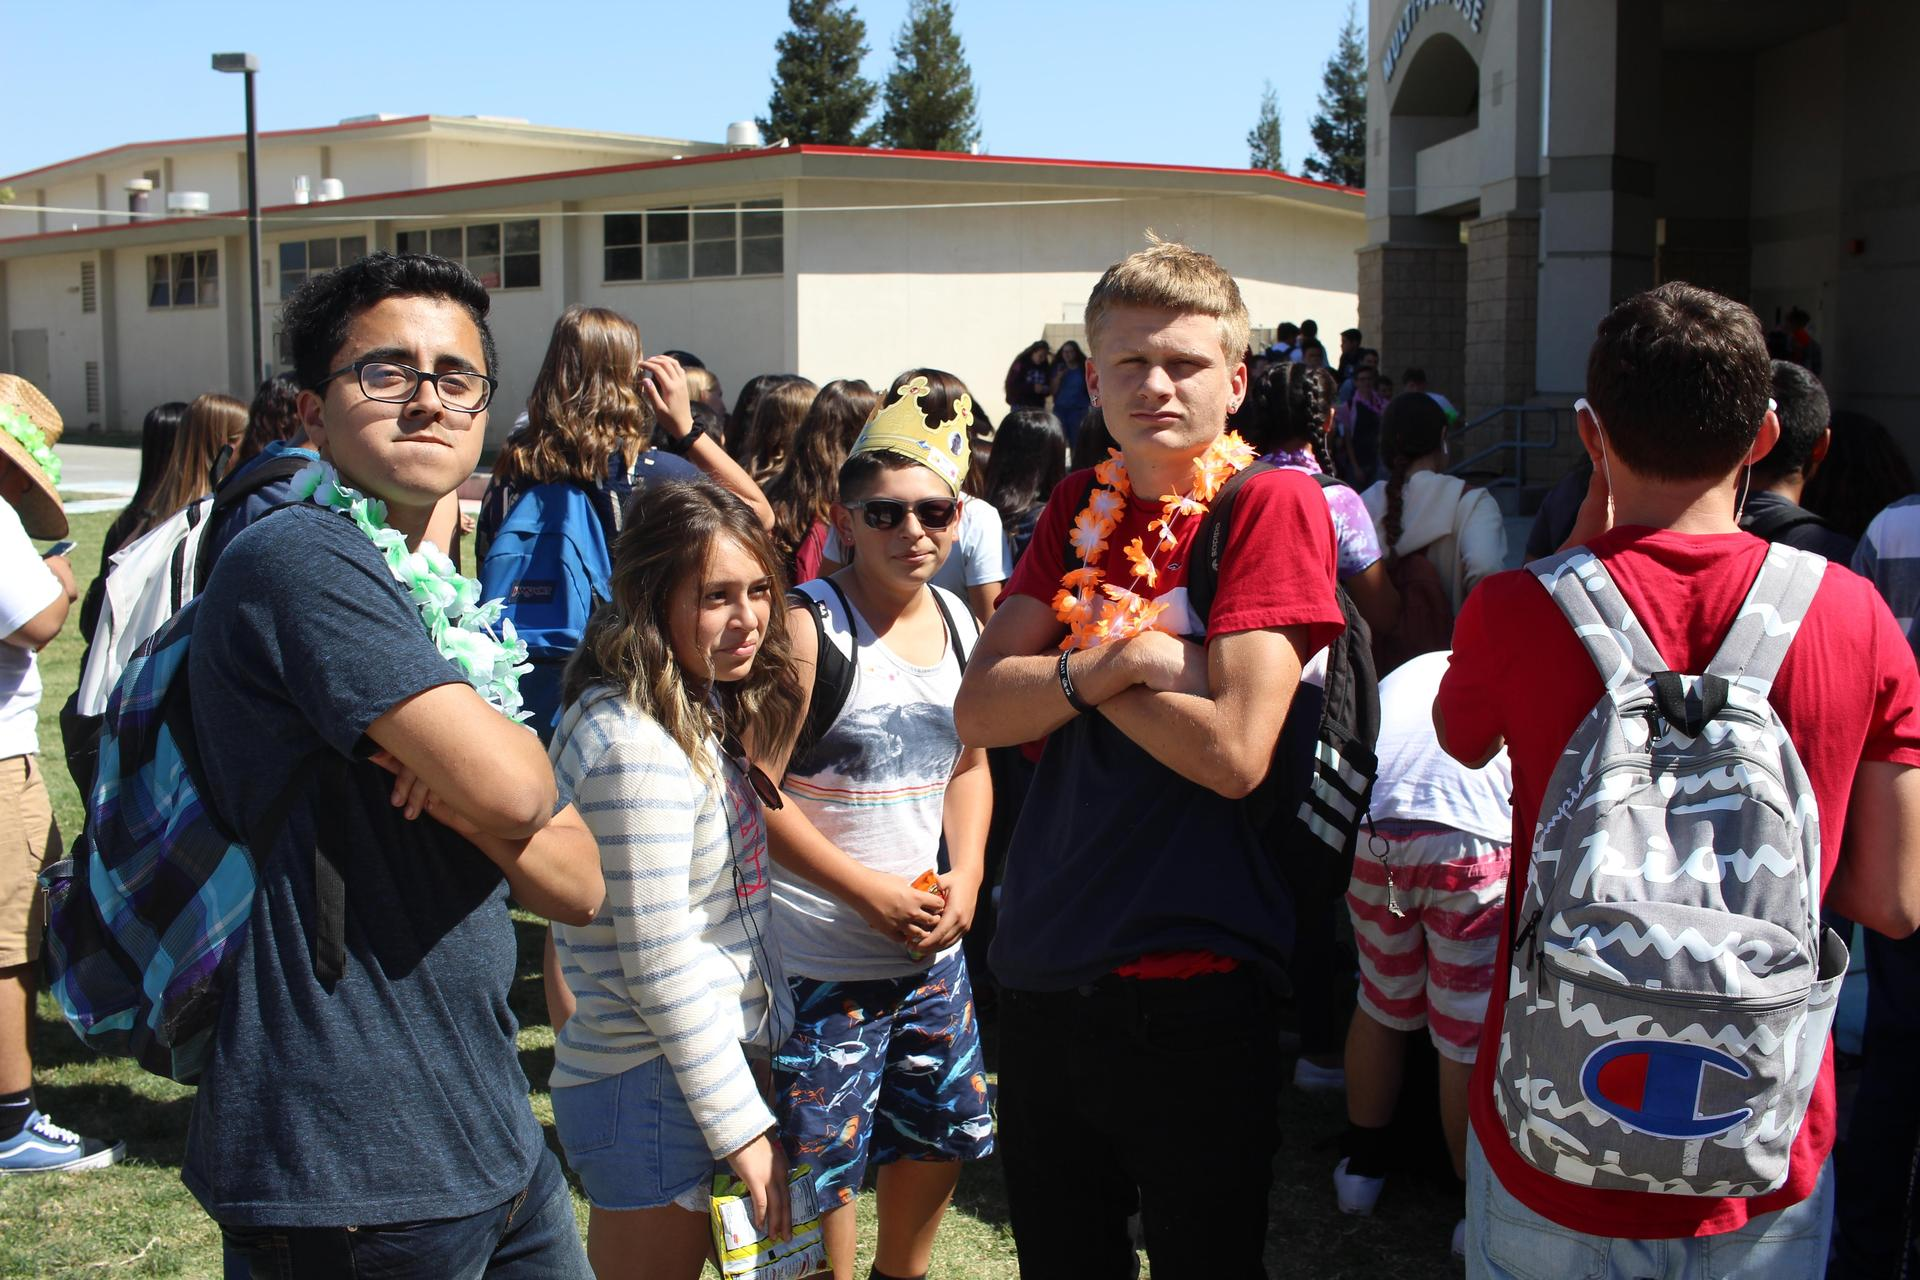 Students dressed up for Homecoming